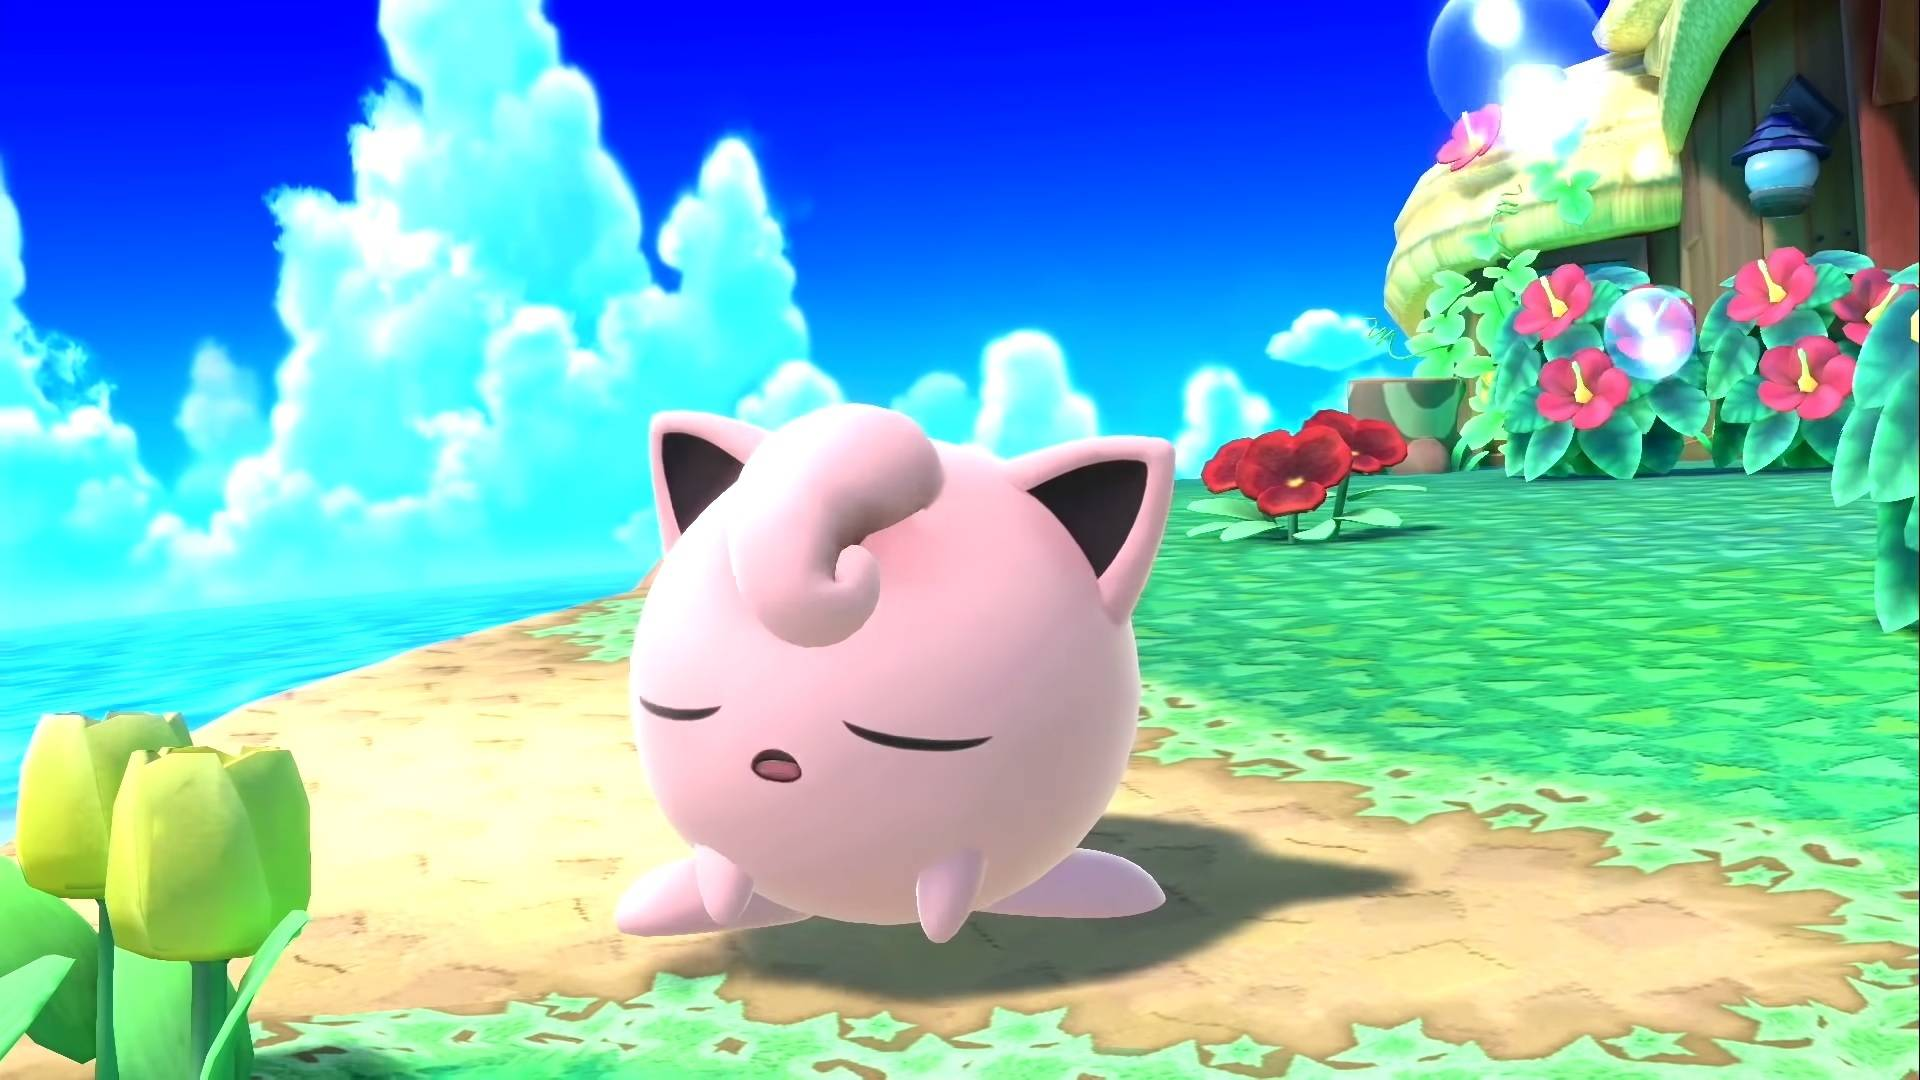 Melee player walks out of match following Jigglypuff stall Photo